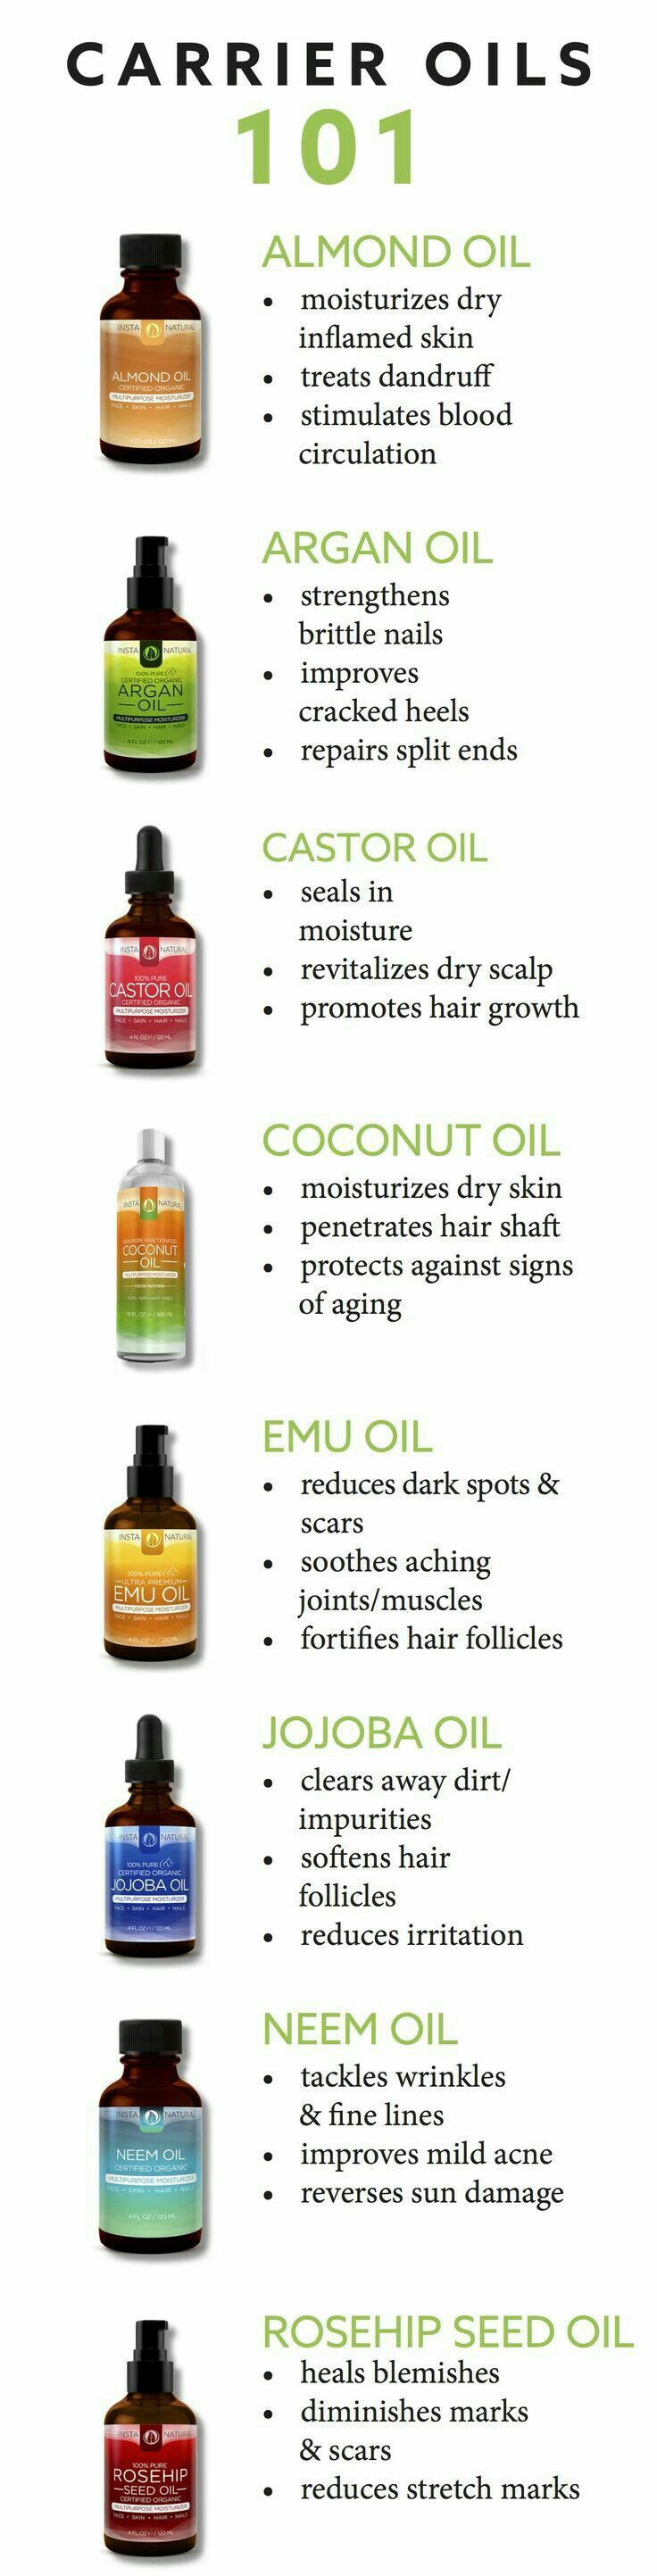 Carrier oils are known as base oil or vegetable oil. They are used to dilute ess...